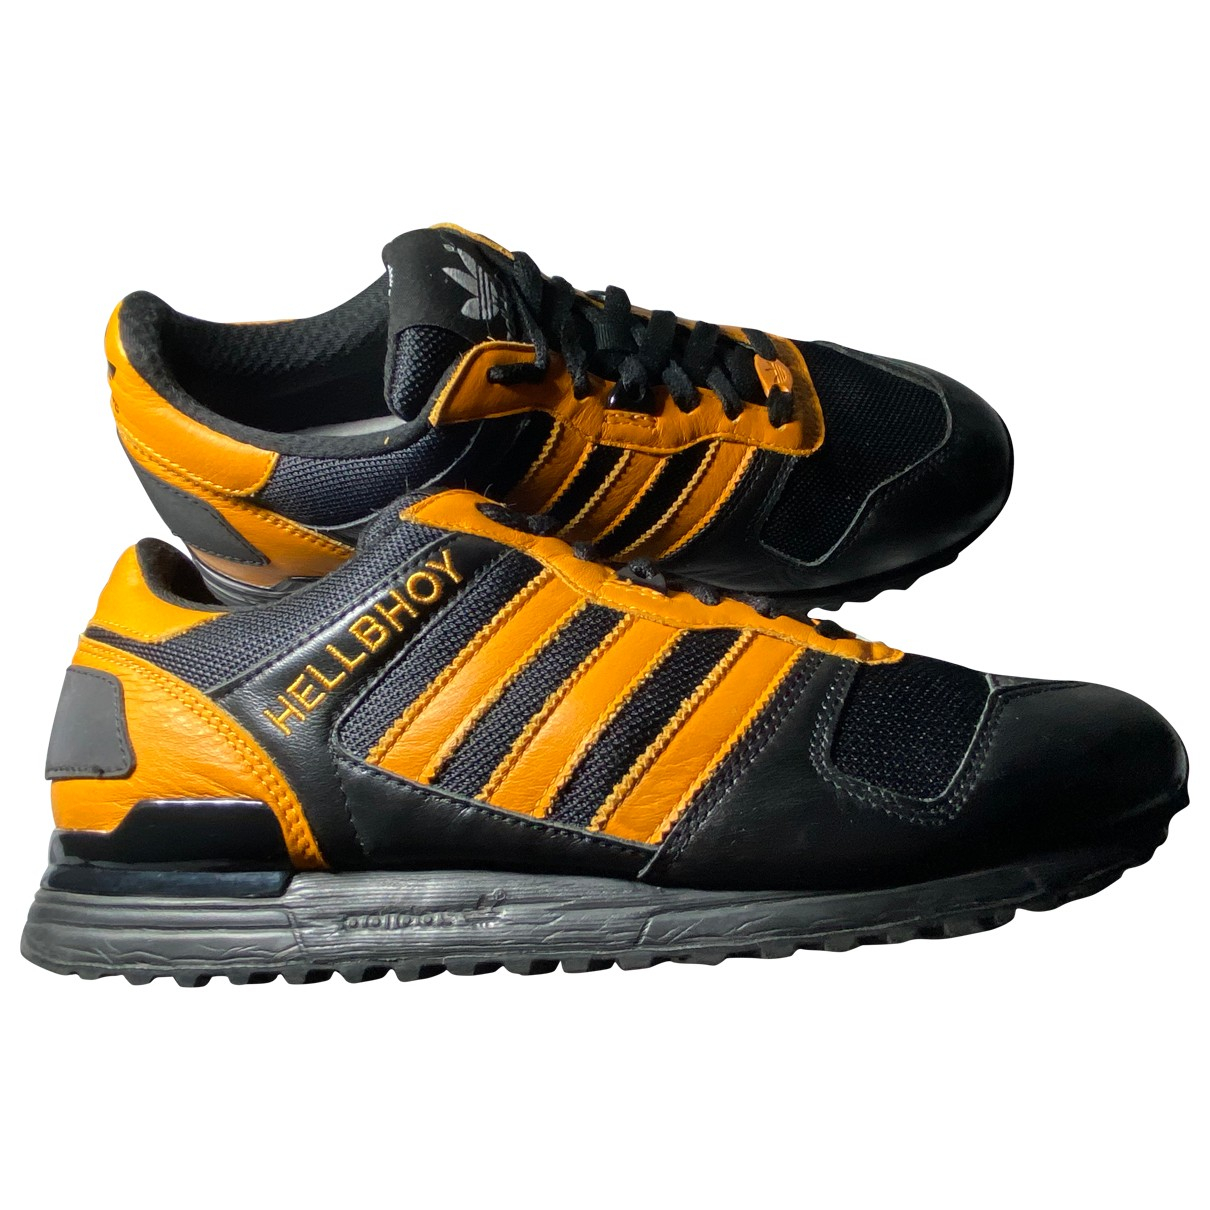 Adidas ZX Black Leather Trainers for Men 8 UK